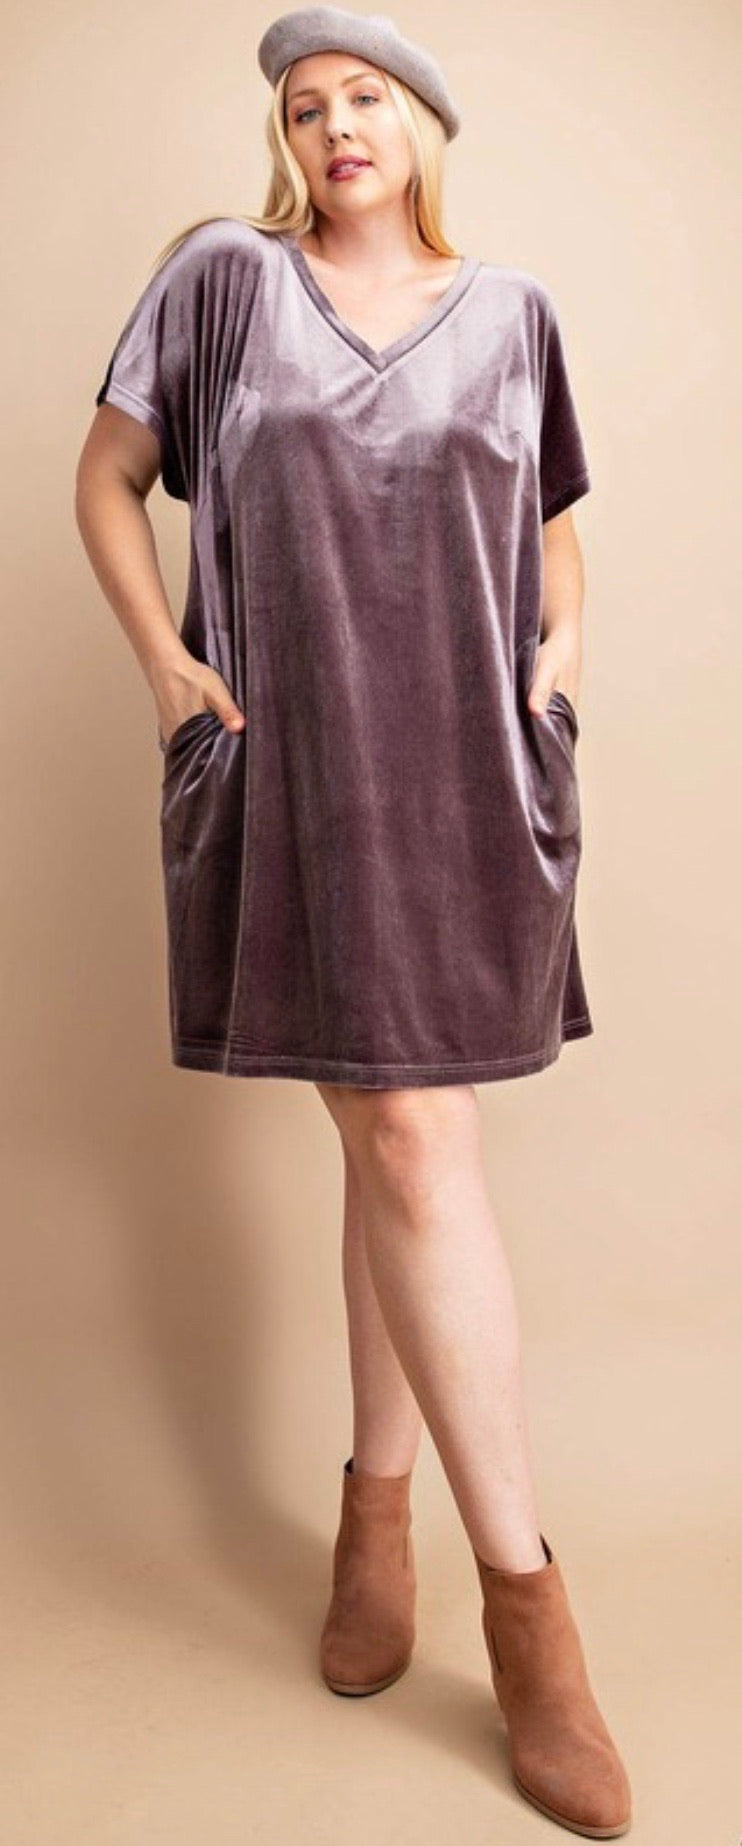 V-neck velour dress with pocket | Cheeky Cactus